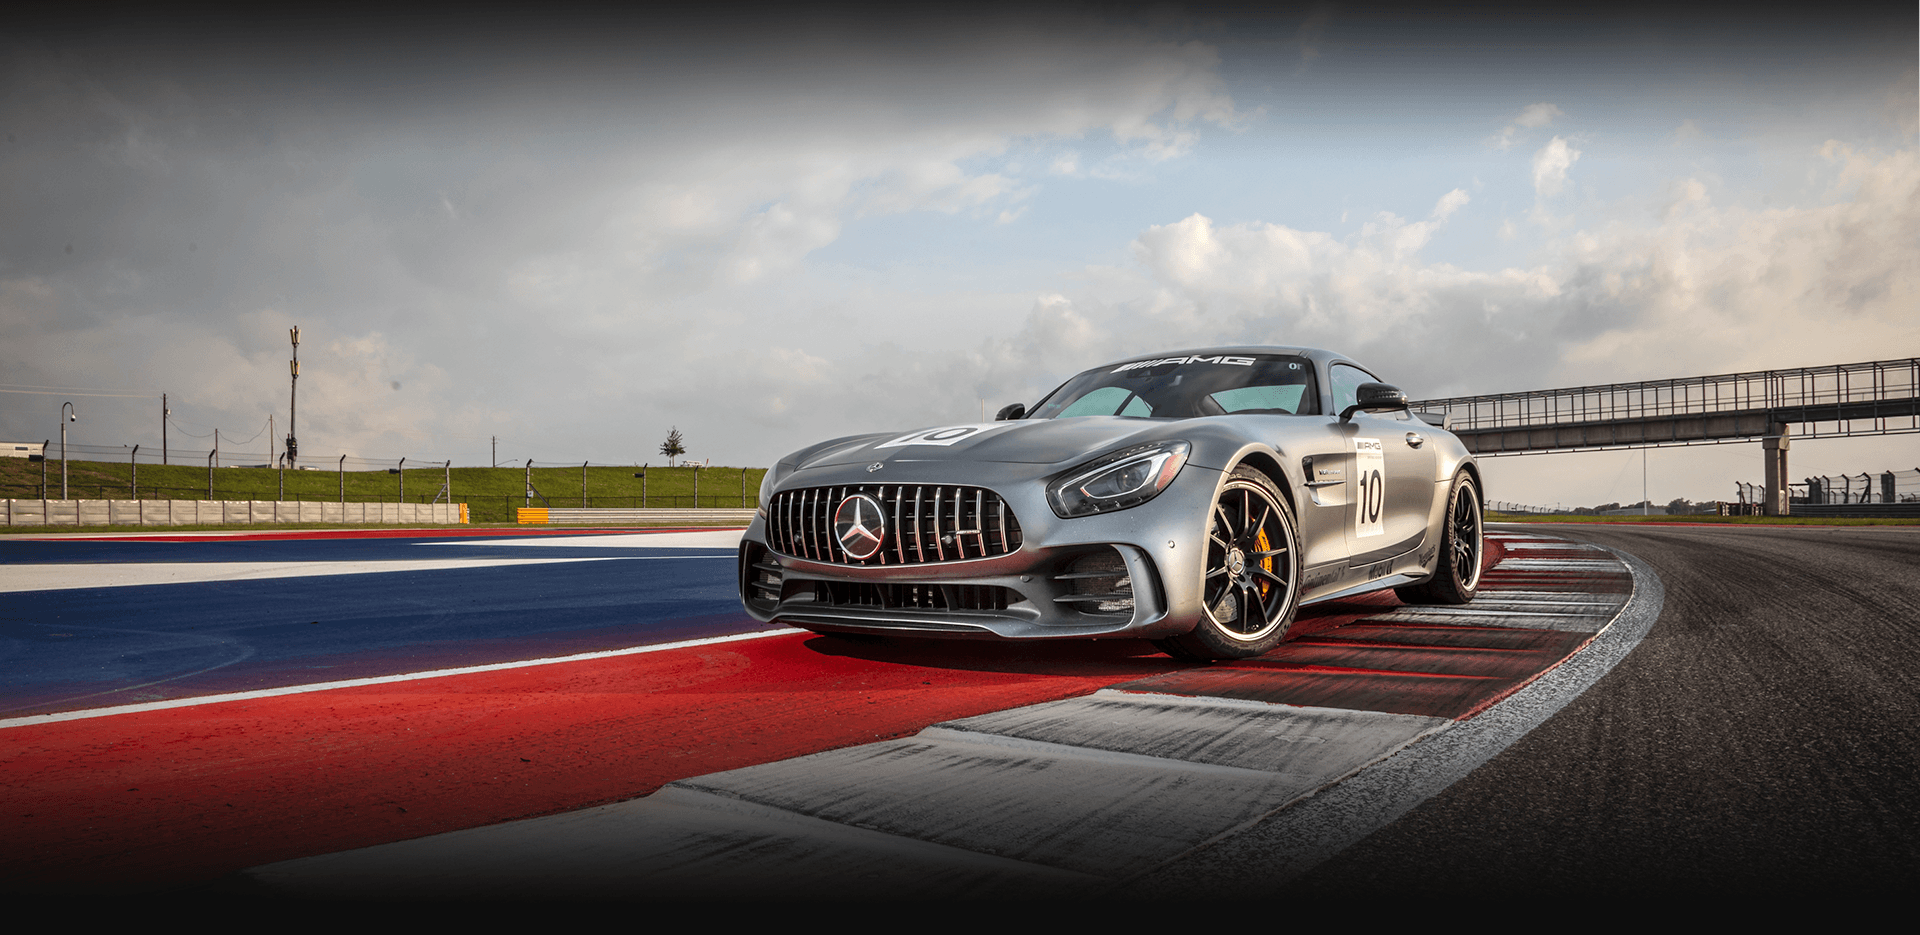 Gray Mercedes-AMG vehicle parked on rumble strip at Circuit of the Americas